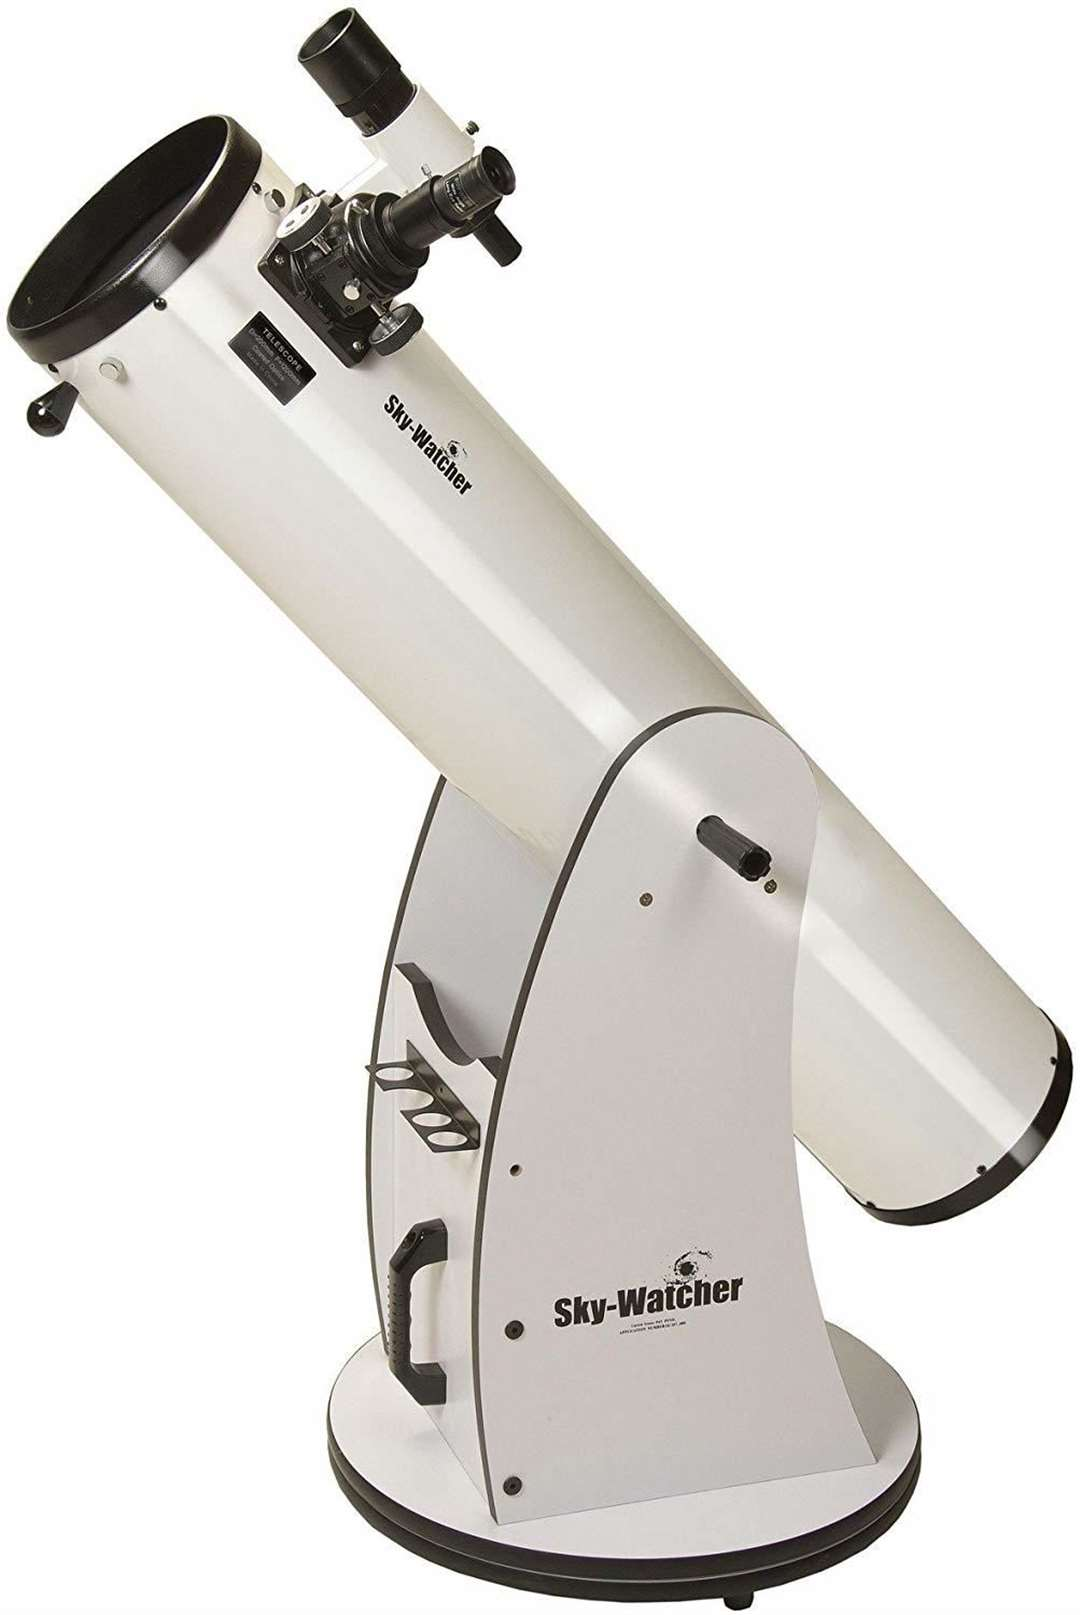 A Sky-Watcher telescope with a Dobsonian mount